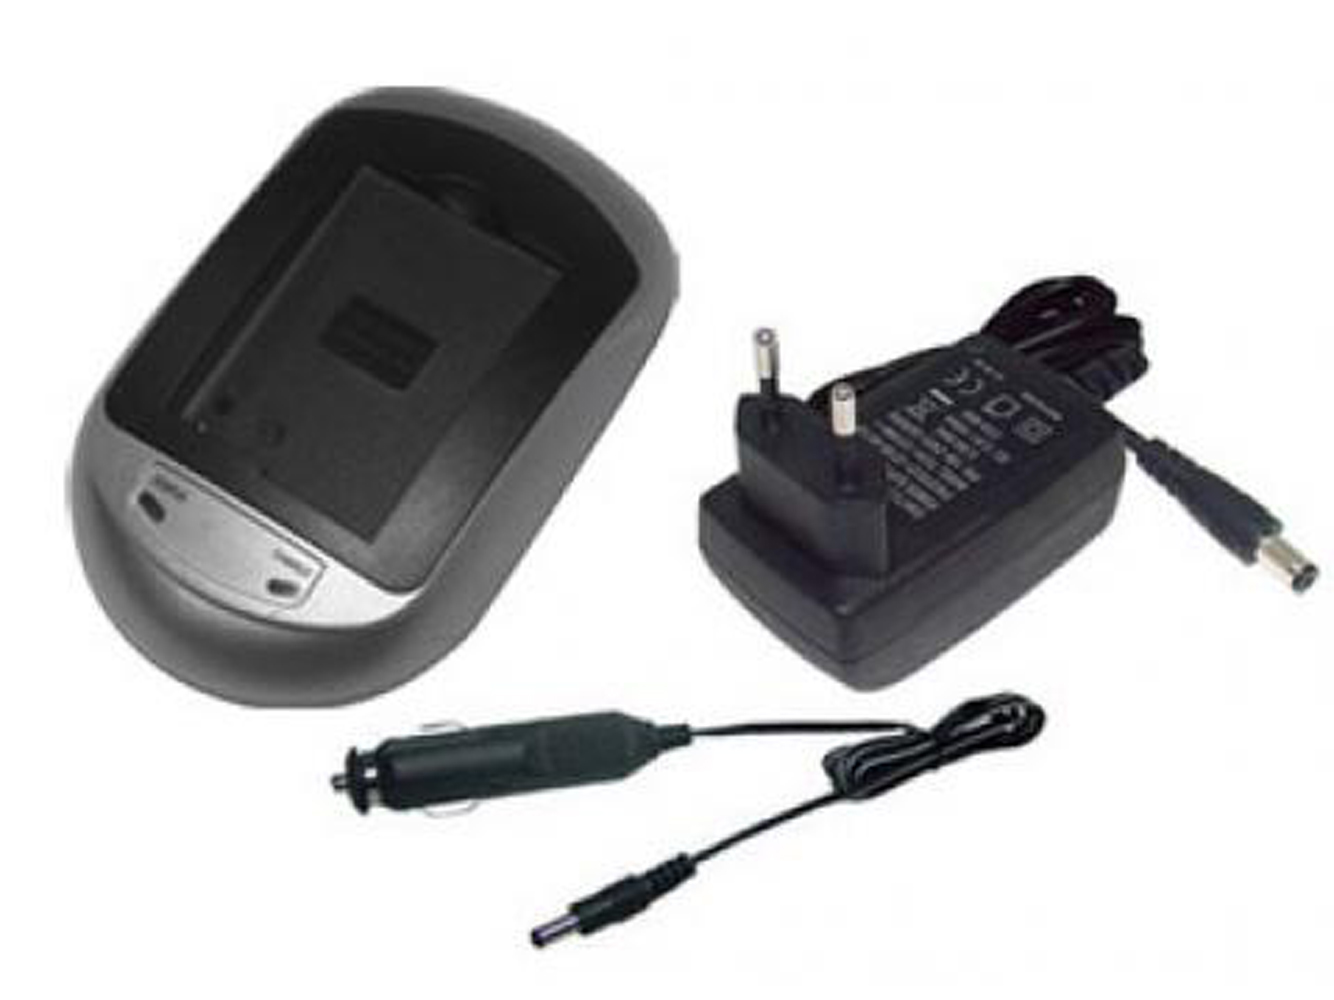 Battery Charger for PANASONIC DMW-BLD10, DMW-BLD10E, DMW-BLD10GK, DMW-BTC7